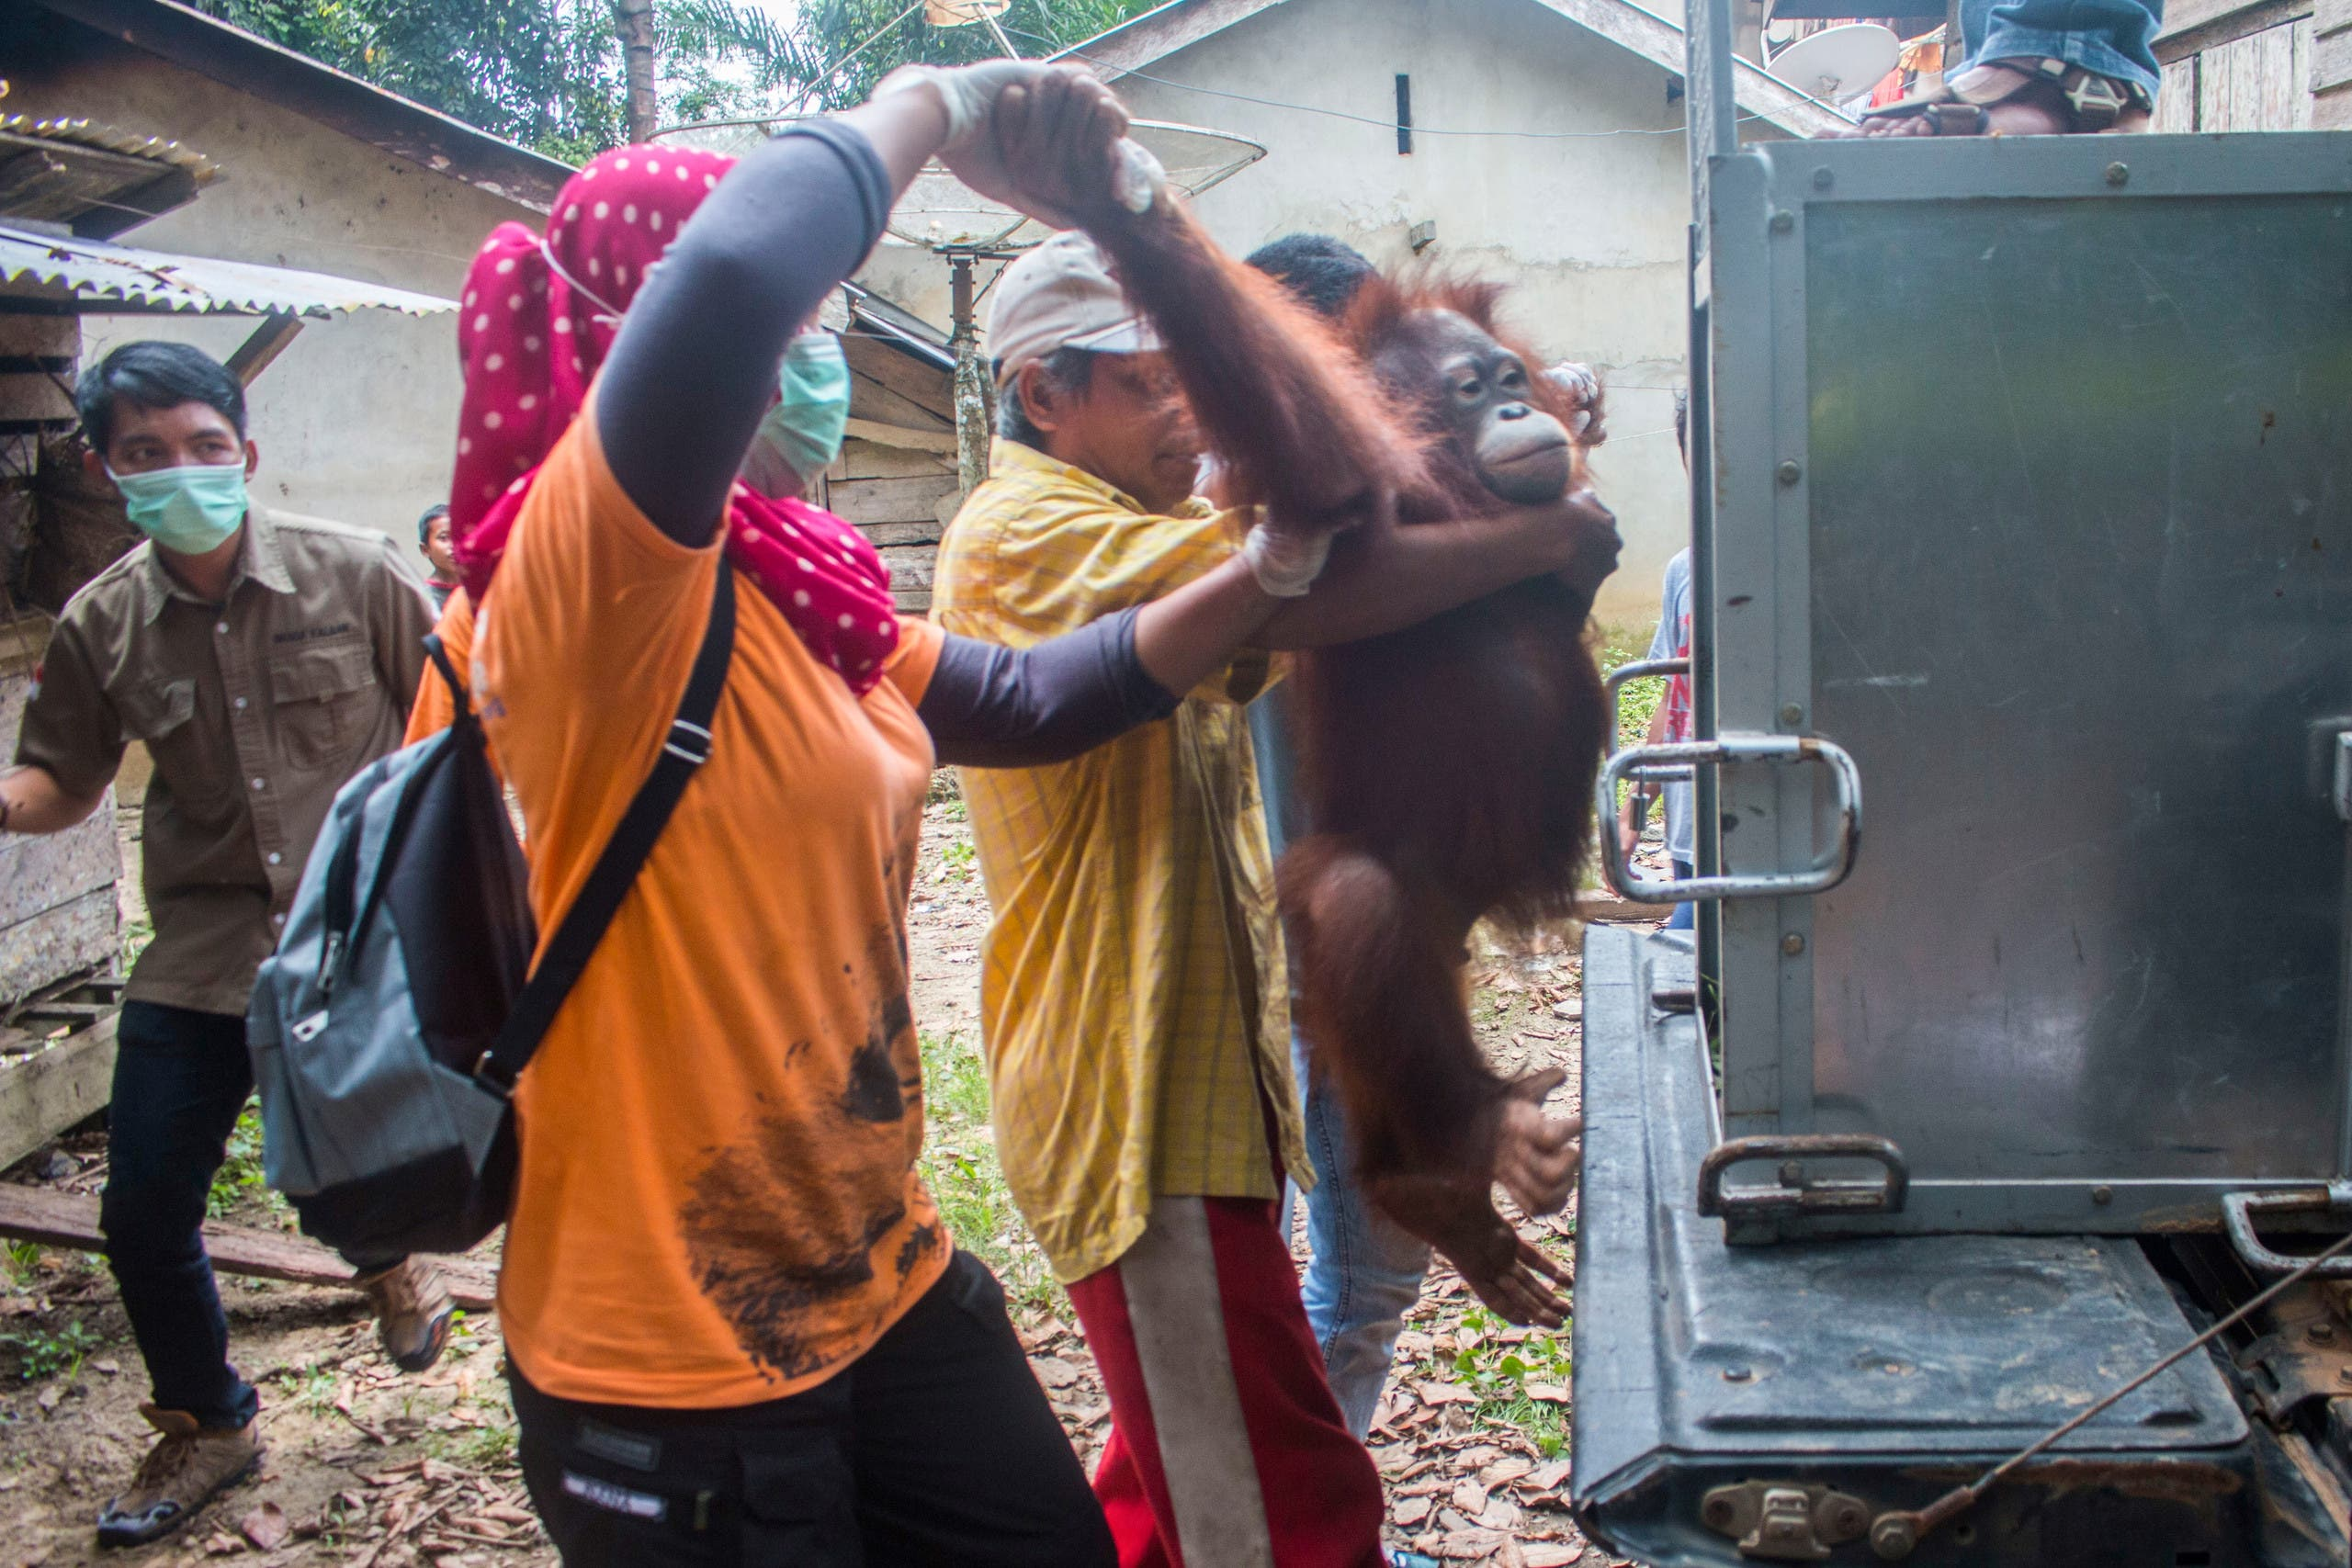 This handout from the International Animal Rescue taken on March 19, 2018 and released on March 23, 2018 shows environmentalists and local officials rescuing Joy the orangutan from villagers who had kept Joy as a house pet in Ketapang, West Kalimantan province. Young orangutan Utu clings to one of his rescuers as he is freed from the tiny wooden cage that has been home for five years. The tiny primate, covered in fuzzy auburn hair, is one of three Bornean orangutan saved in Indonesia over the past two weeks. The rescues are a rare spot of bright news for the critically endangered species, after a string of fatal attacks on the great apes which have been blamed on farmers and hunters. HERIBERTUS / INTERNATIONAL ANIMAL RESCUE / AFP